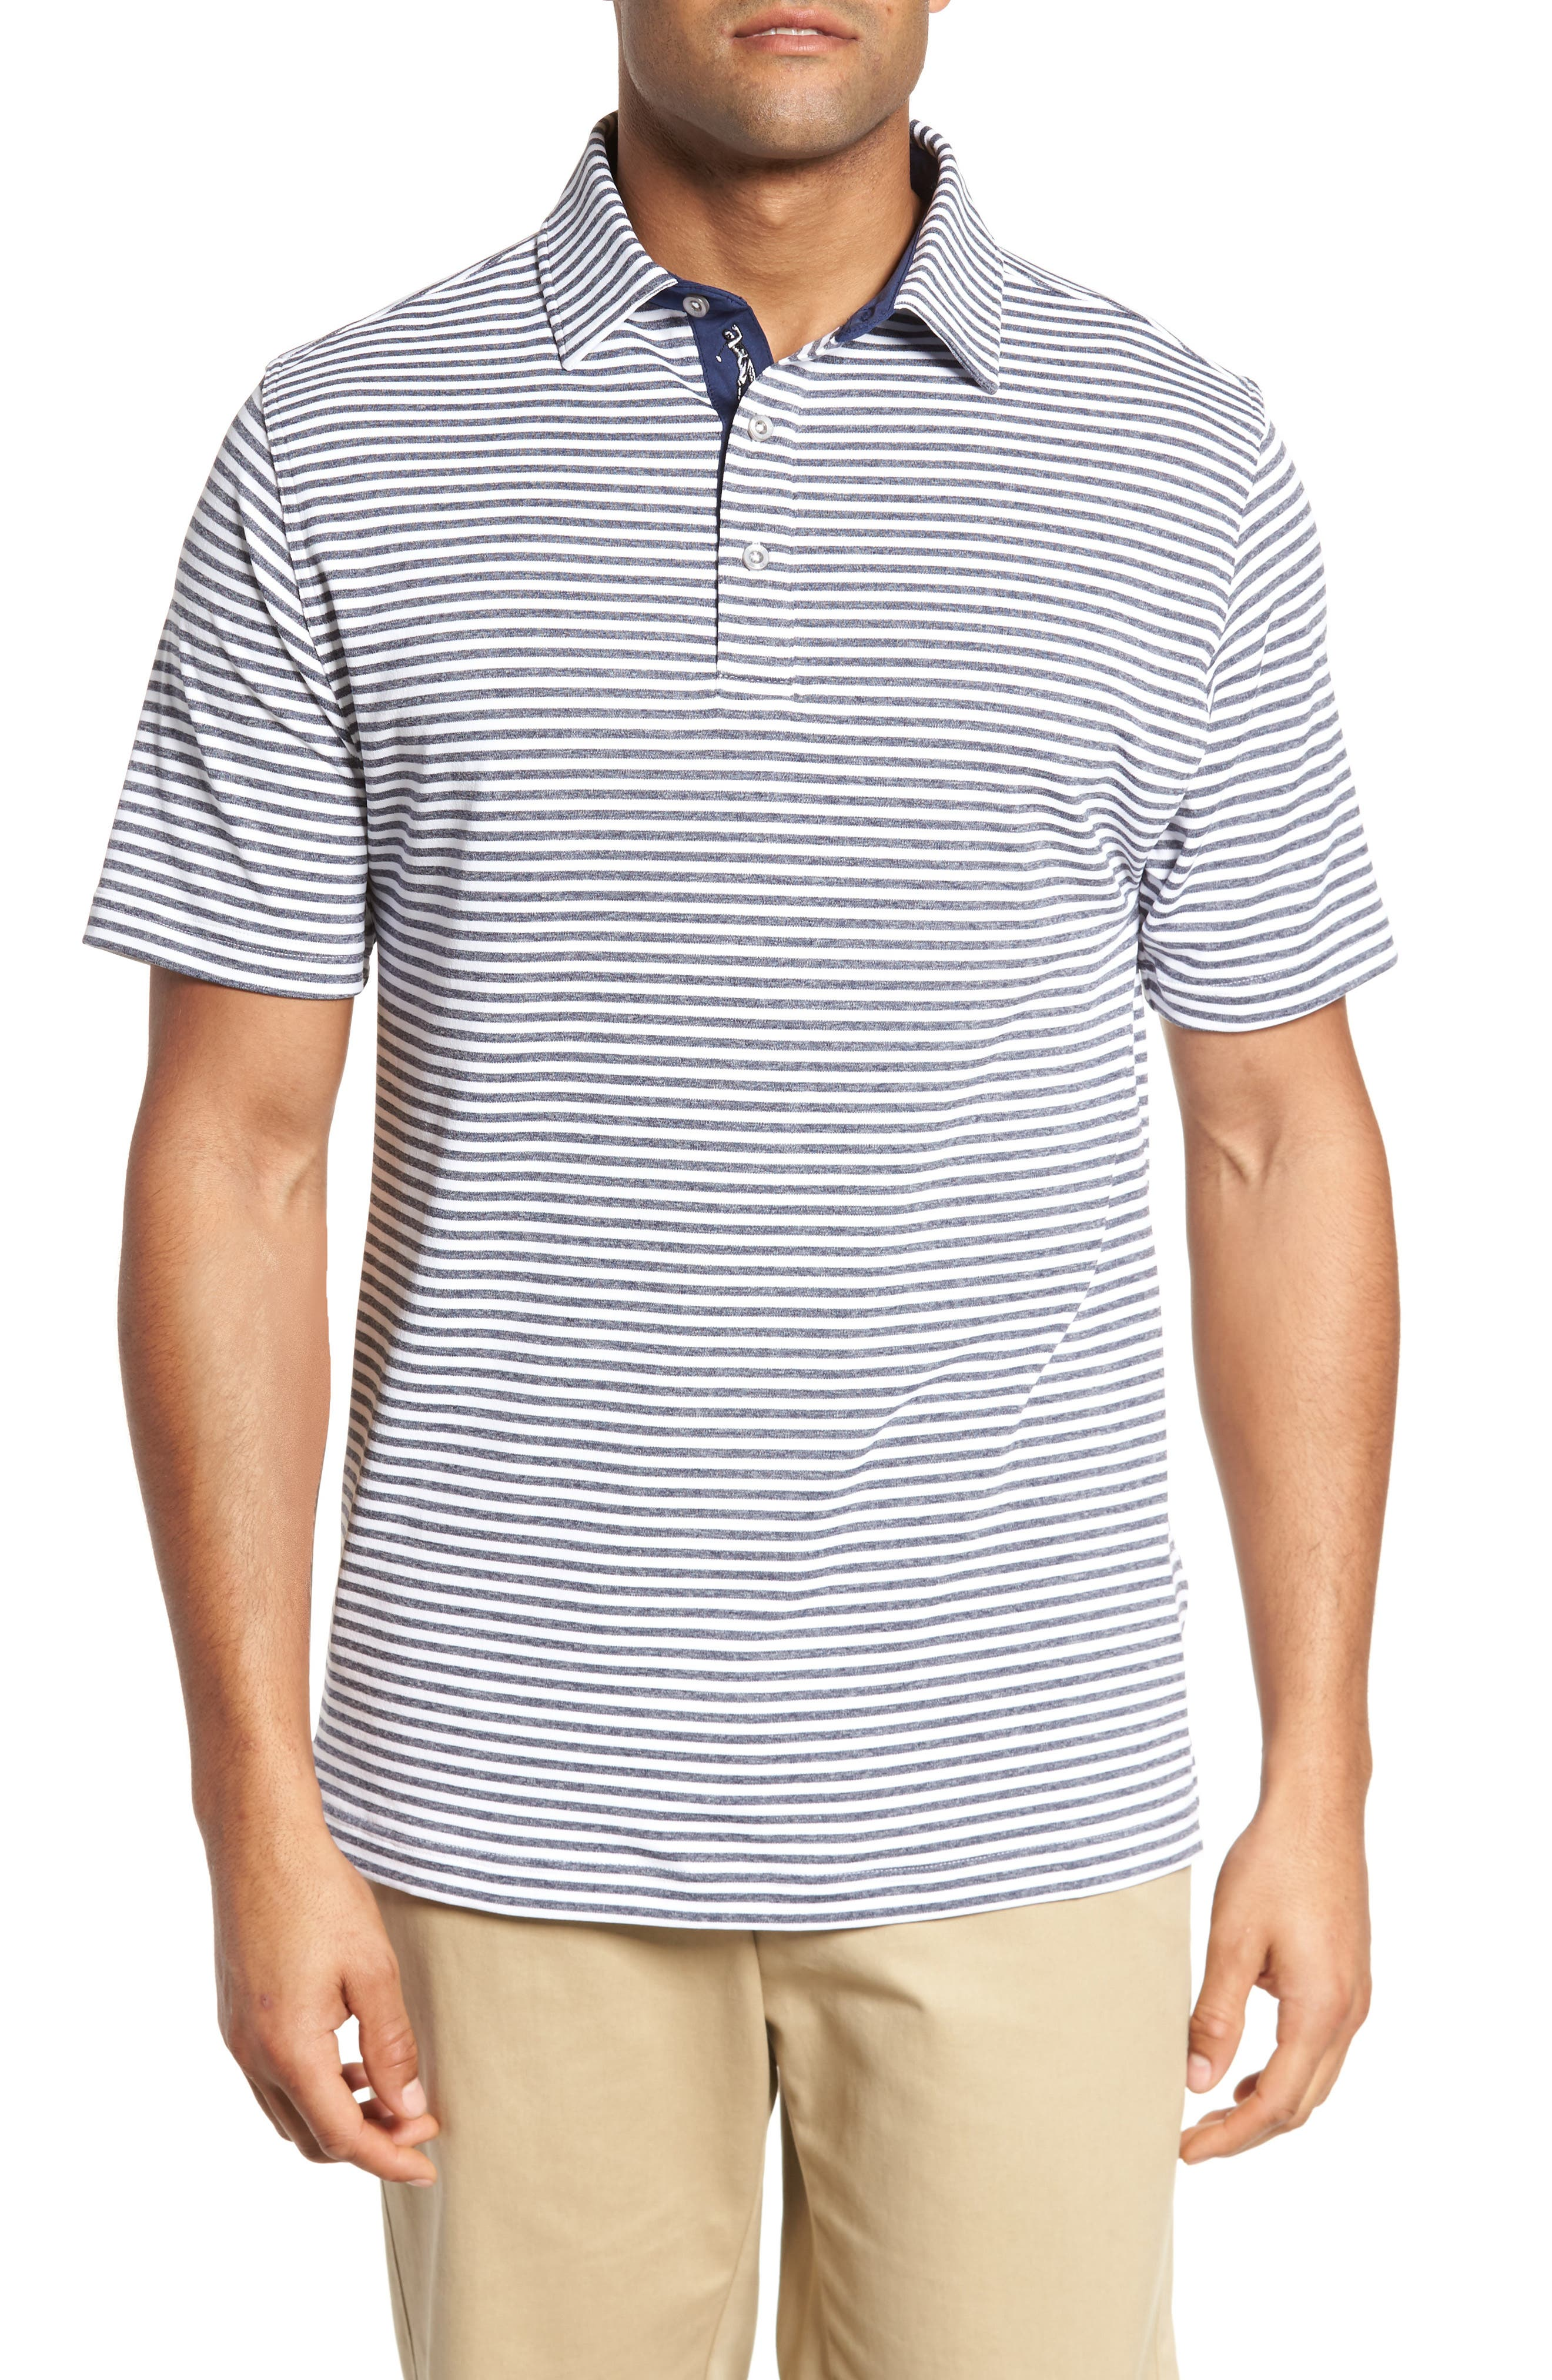 XH2O Tranquil Stripe Jersey Polo,                             Main thumbnail 1, color,                             100